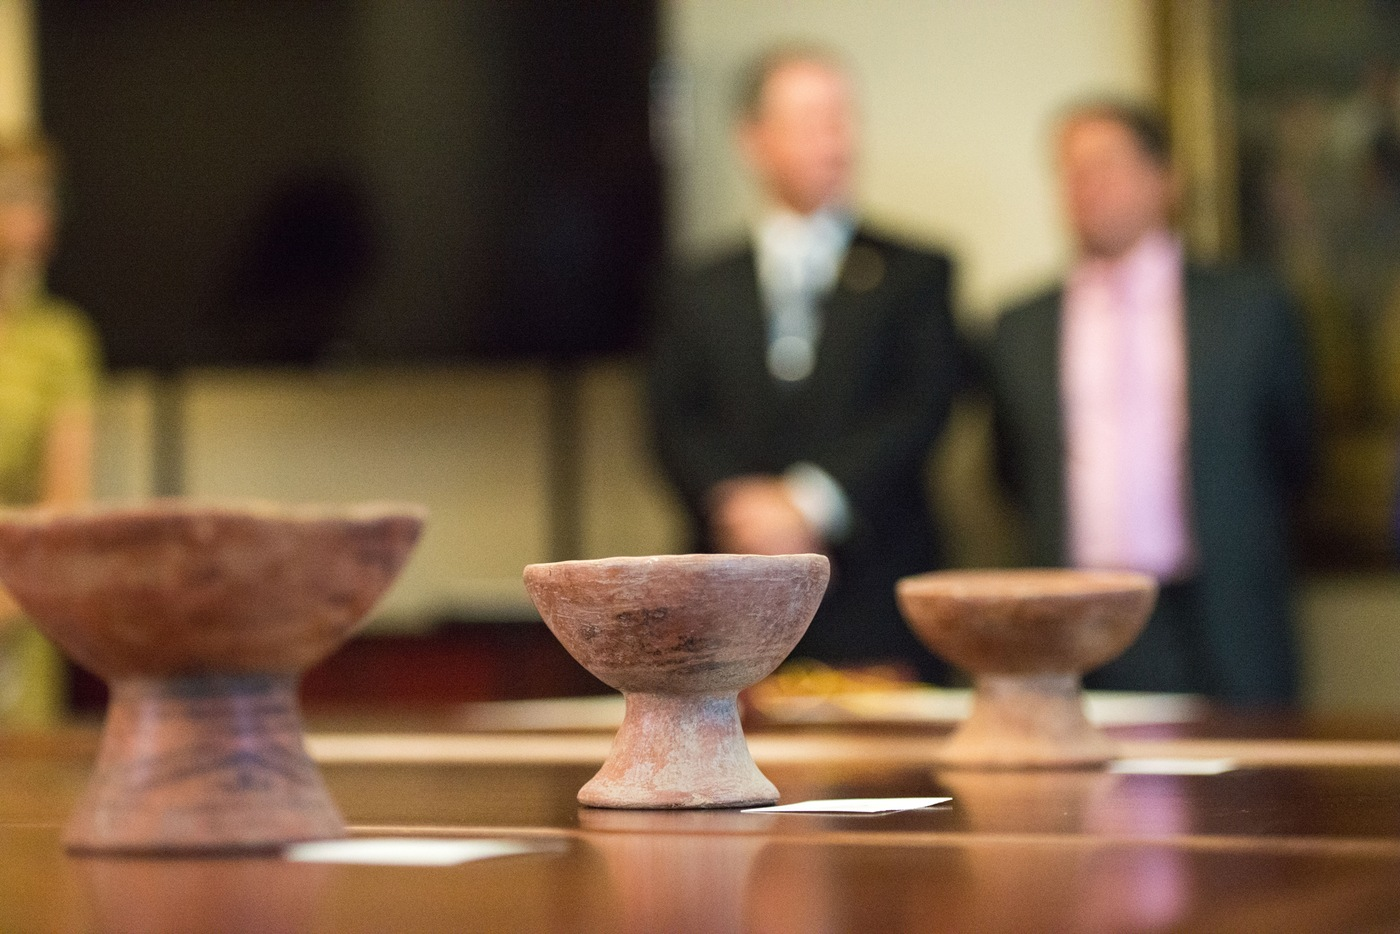 Colombian artifacts recovered by the FBI from Don Miller's home in Indiana are seen on a table during an October 2018 repatriation ceremony at the Colombian Embassy in Washington, D.C.